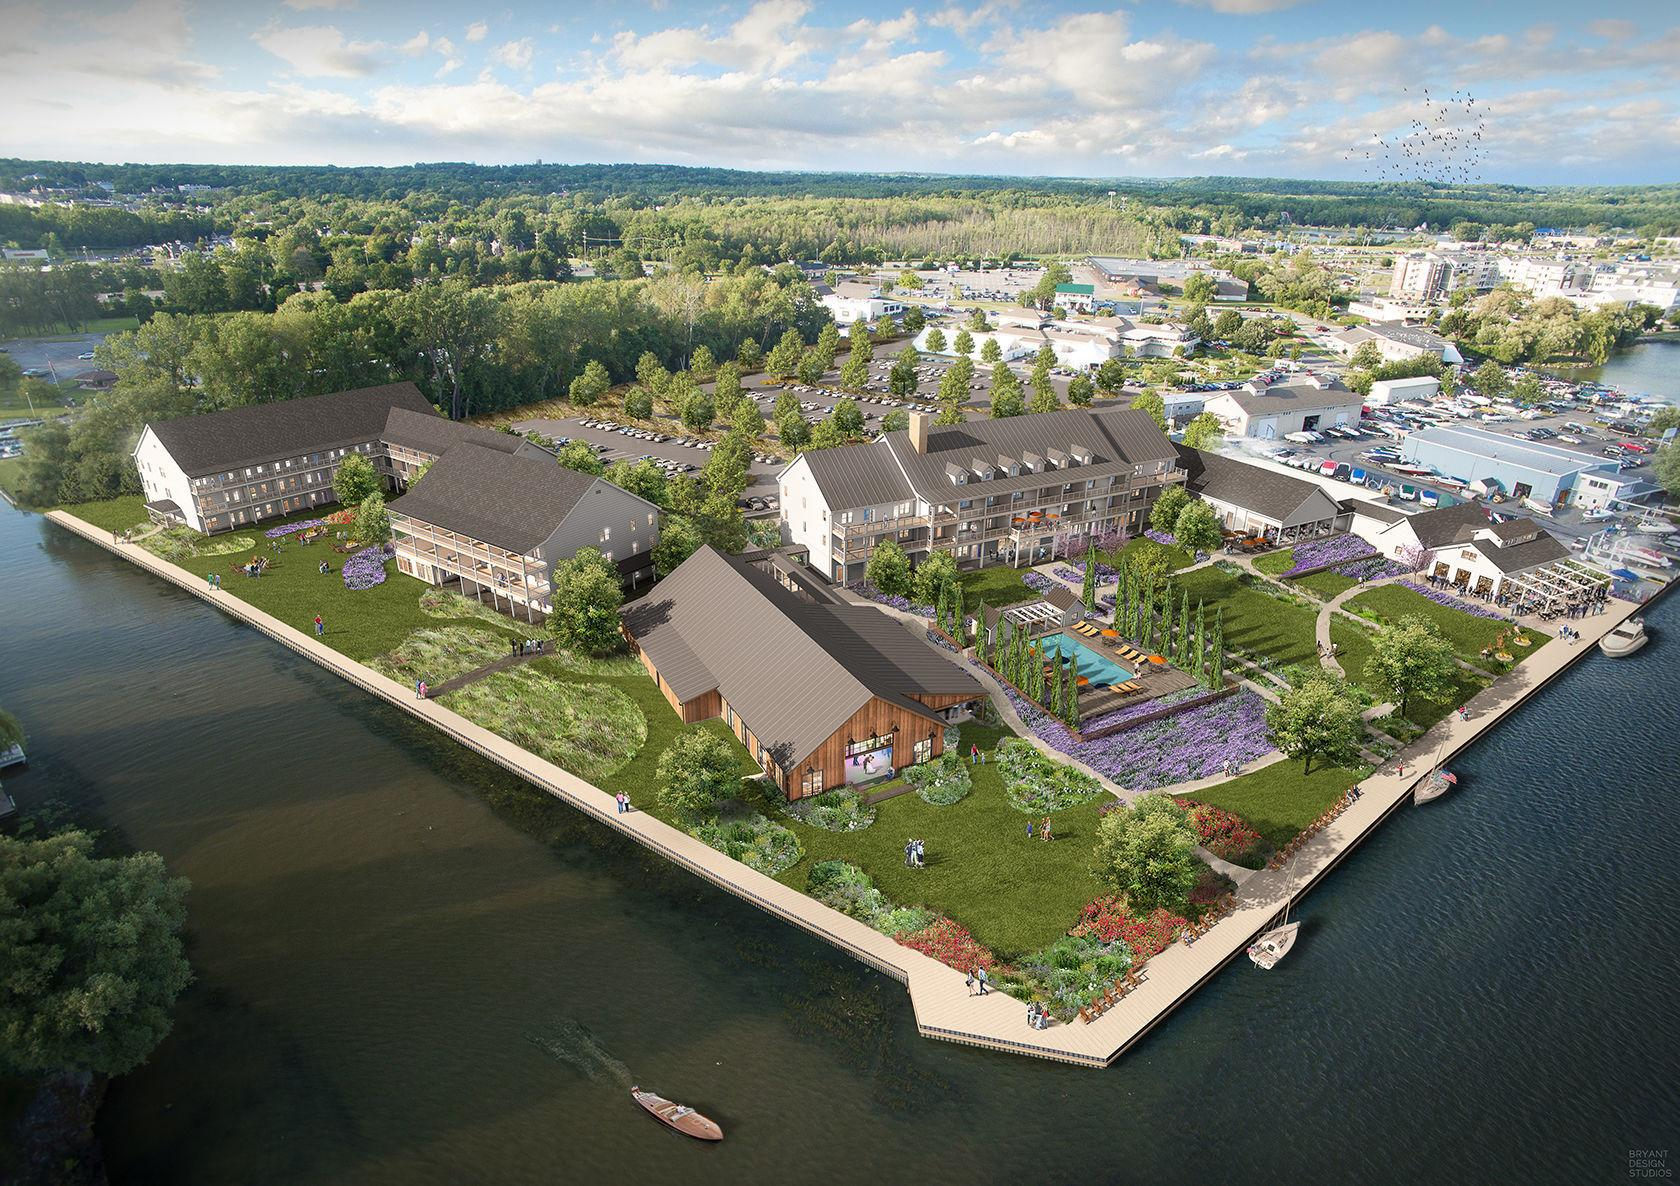 Seaplanes from NYC landing in Canandaigua for new hotel? It's a possibility, if demanded